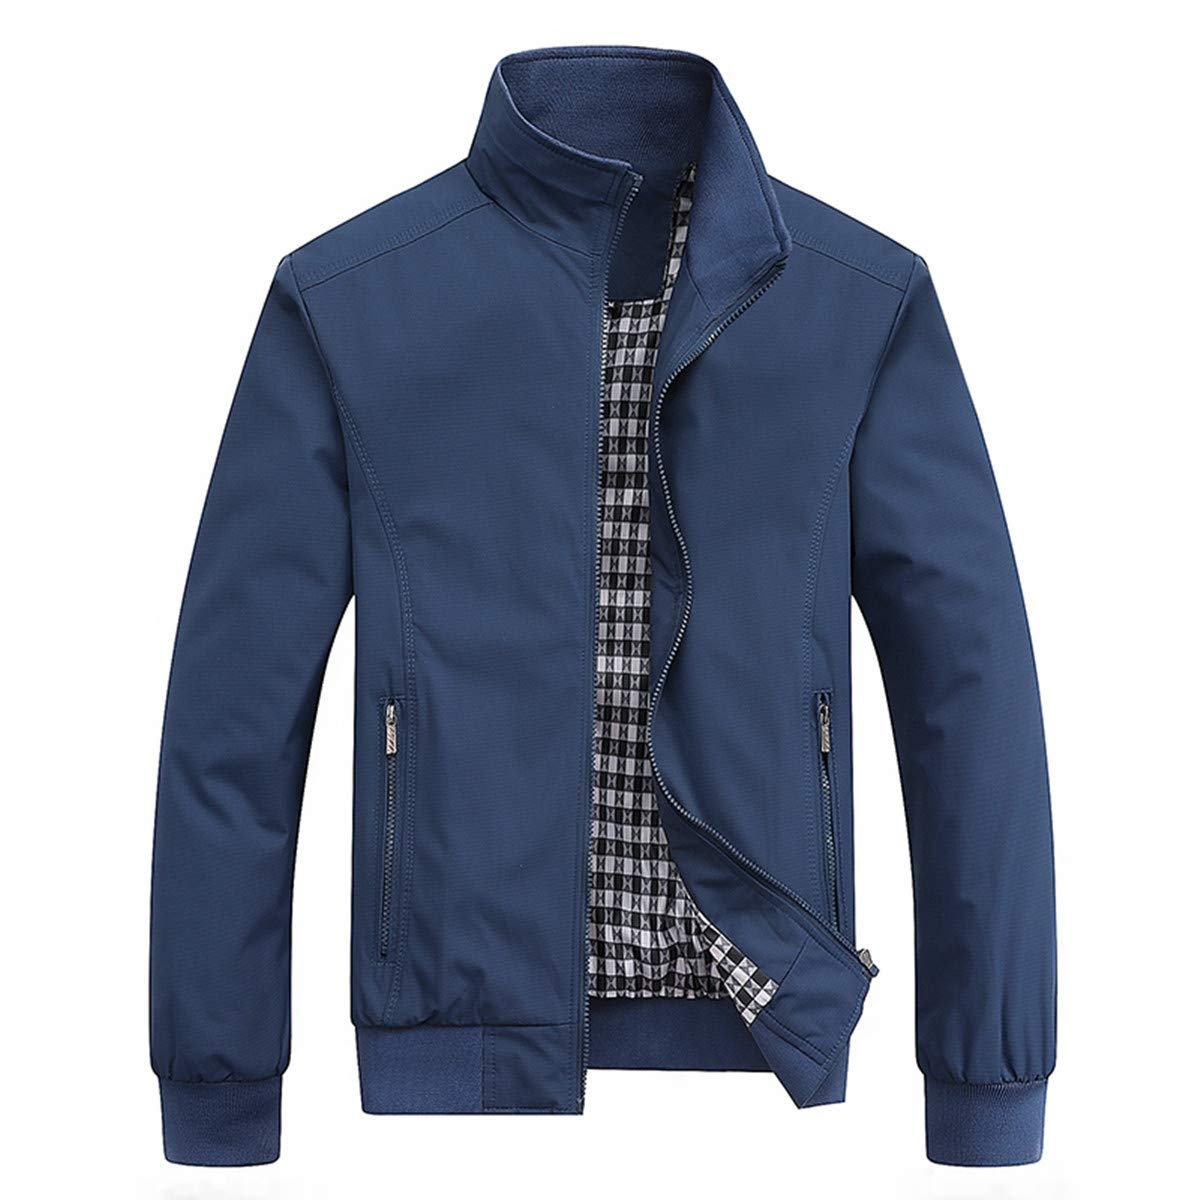 PERDONTOO Men's Casual Jacket Outdoor Windbreaker Lightweight Bomber Jackets (Medium, Blue) by PERDONTOO